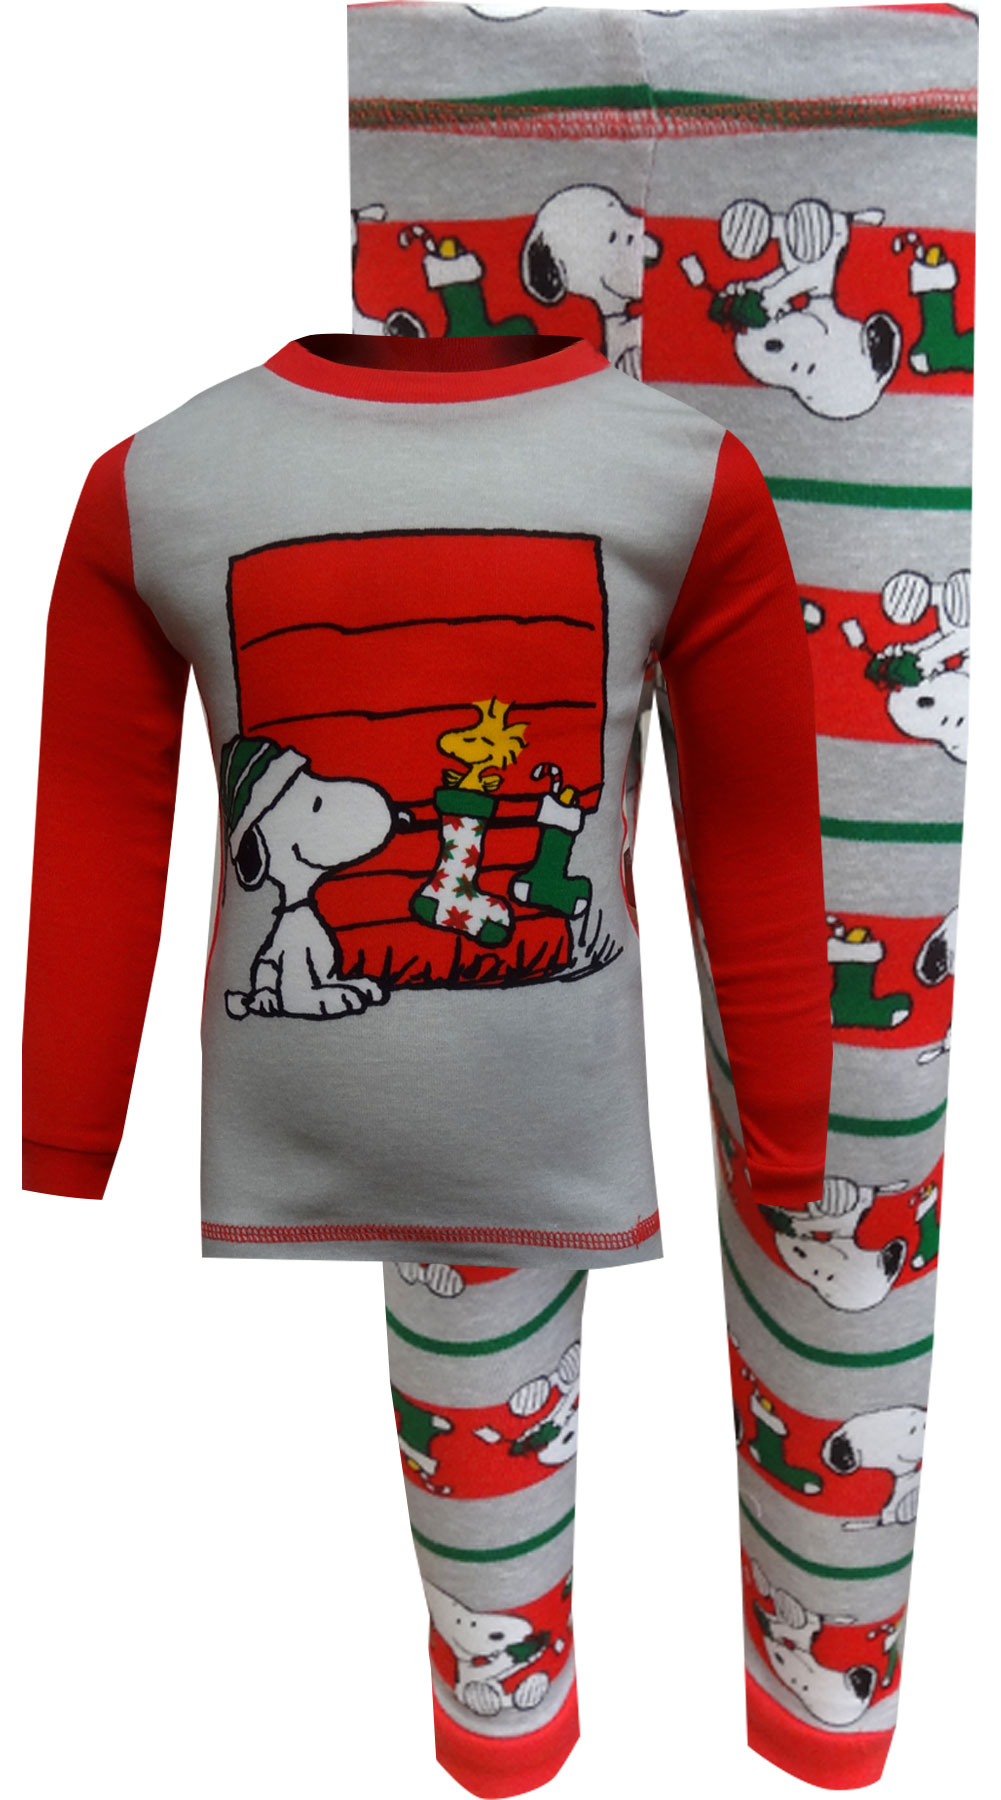 Image of Peanuts Snoopy and Woodstock Christmas Toddler Pajama for boys